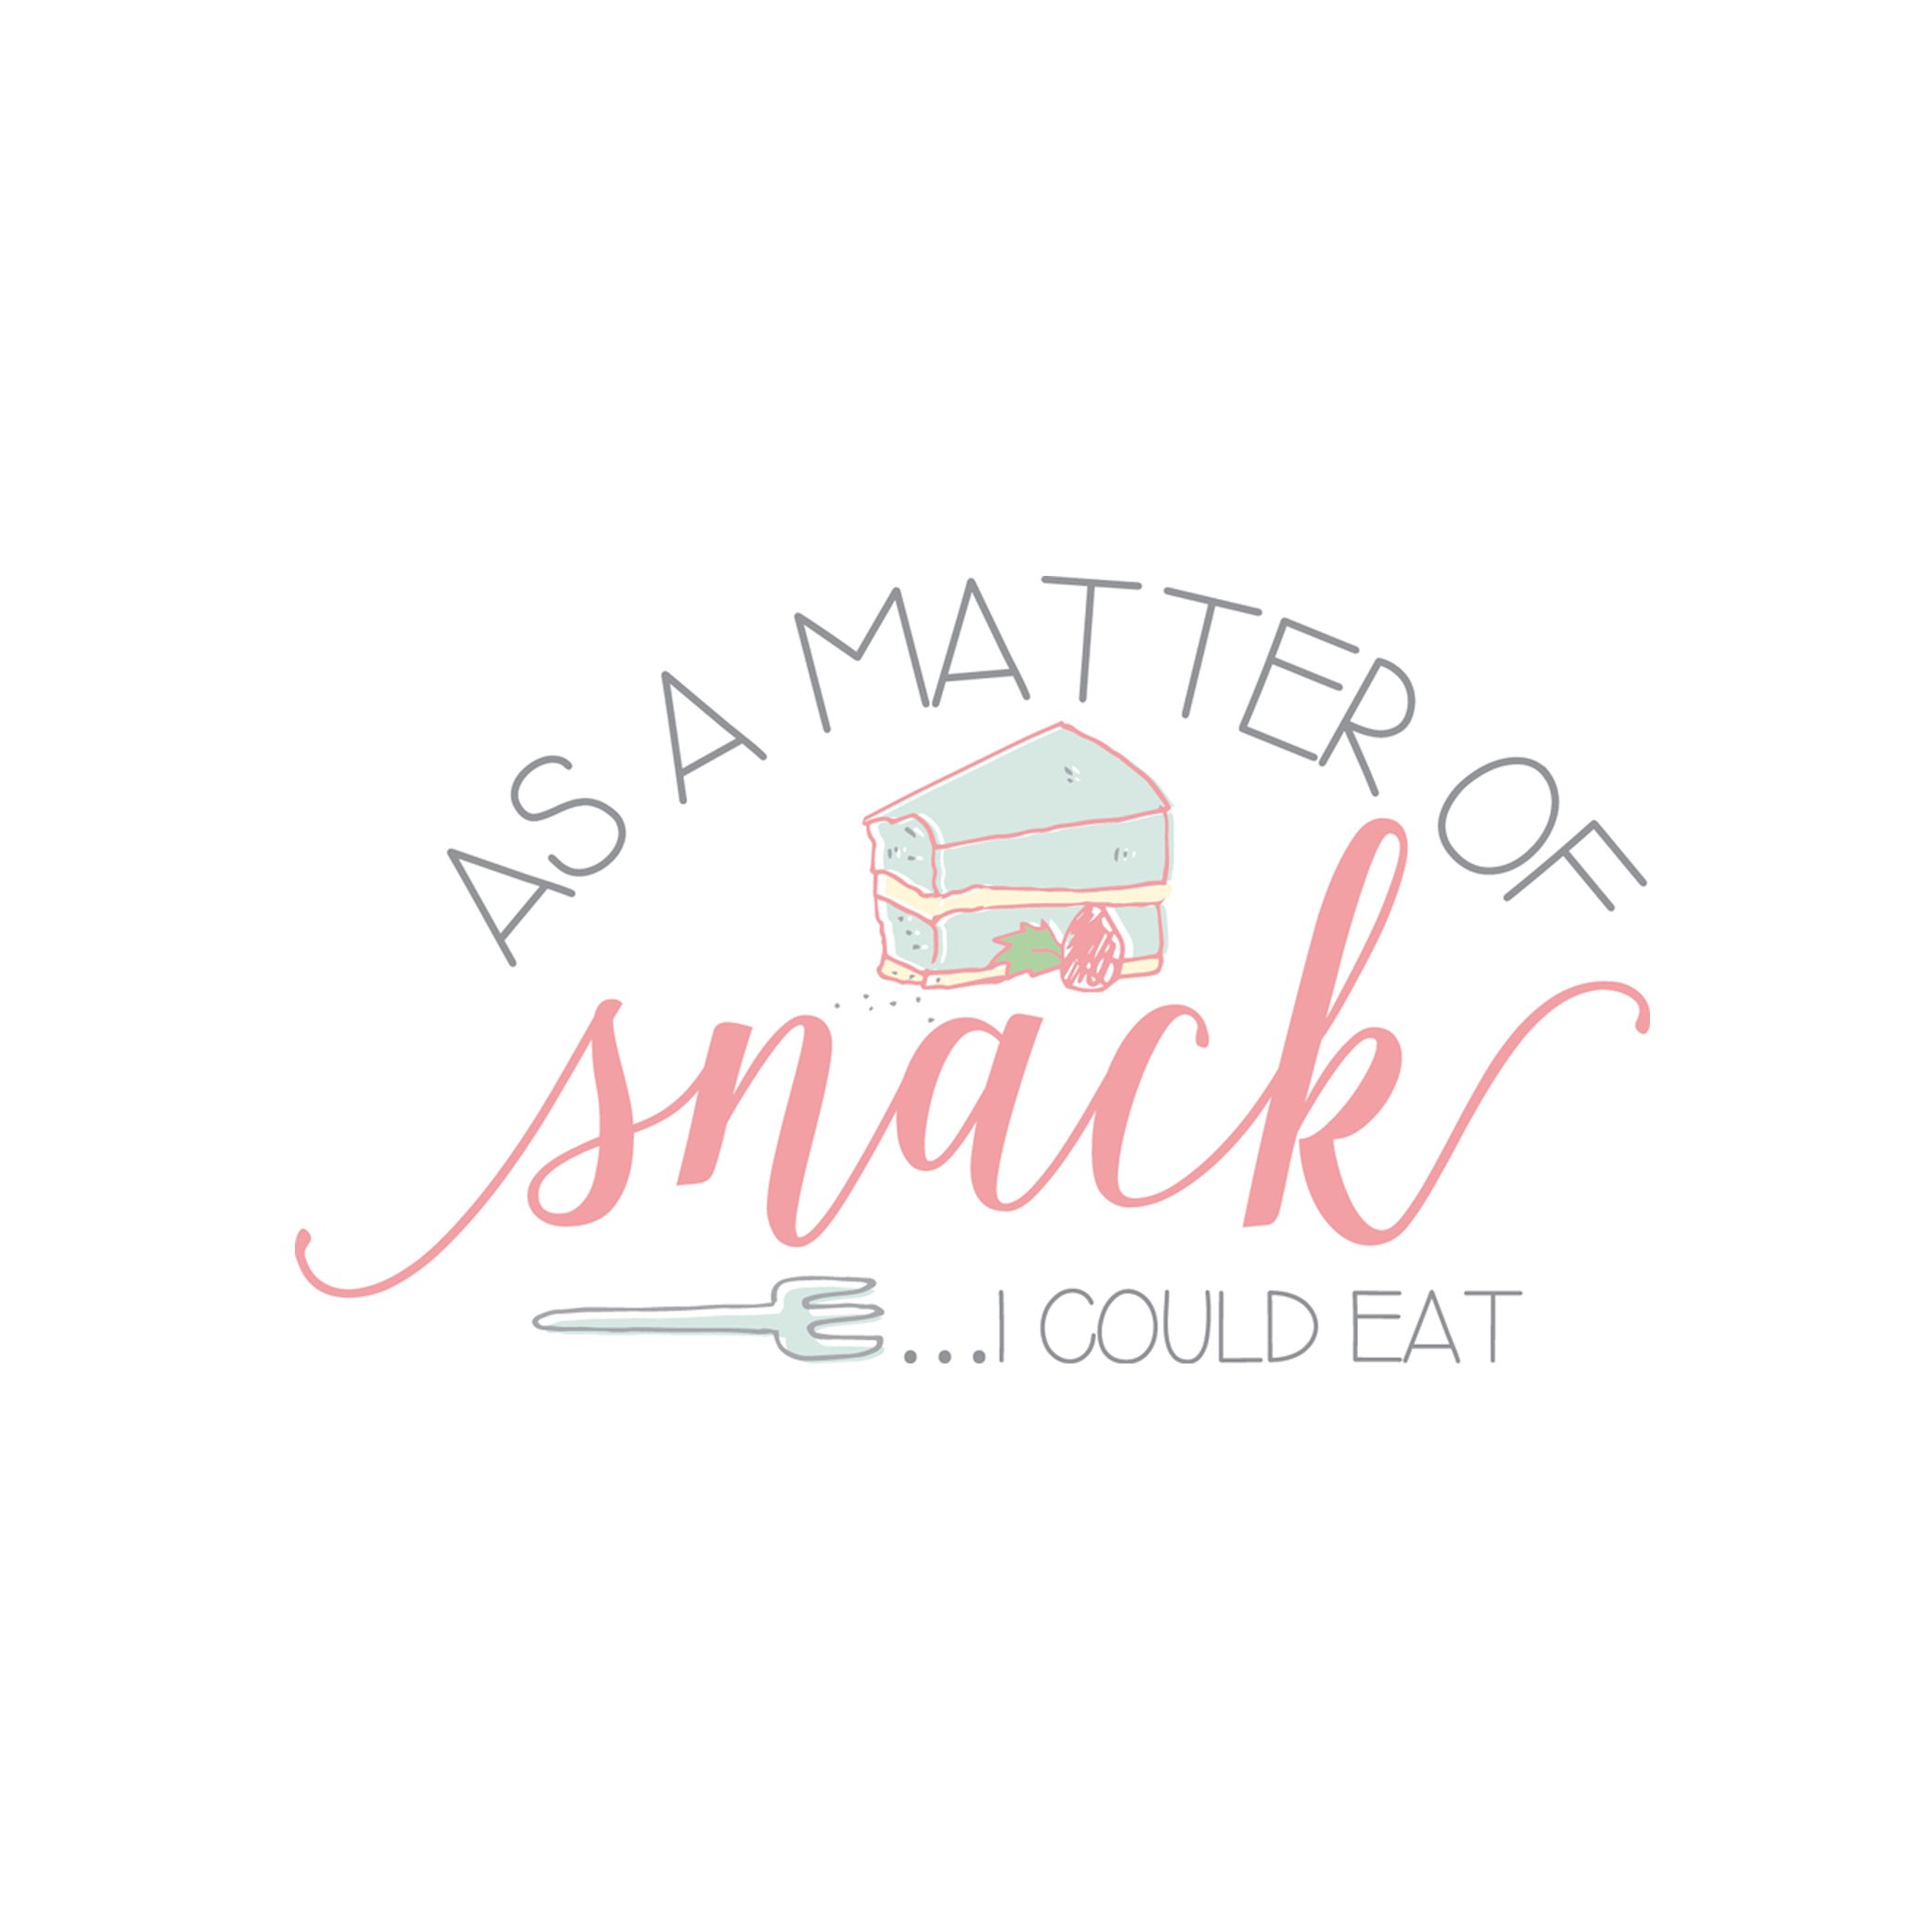 As a Matter of Snack